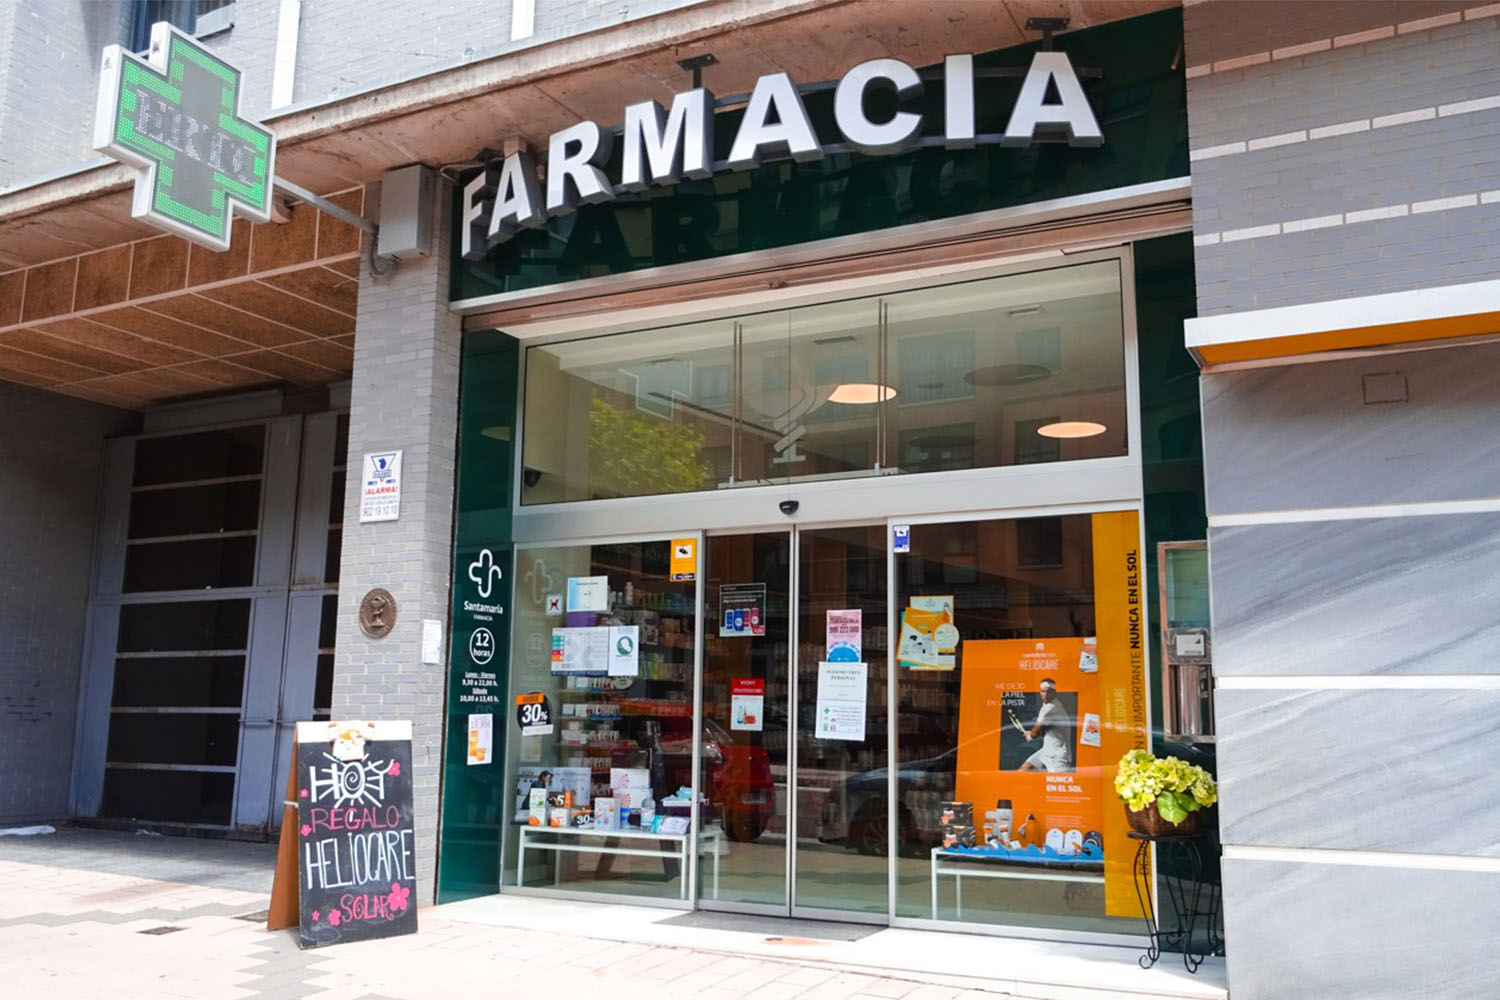 farmacia-beatriz-santamaria-alonso-1-1